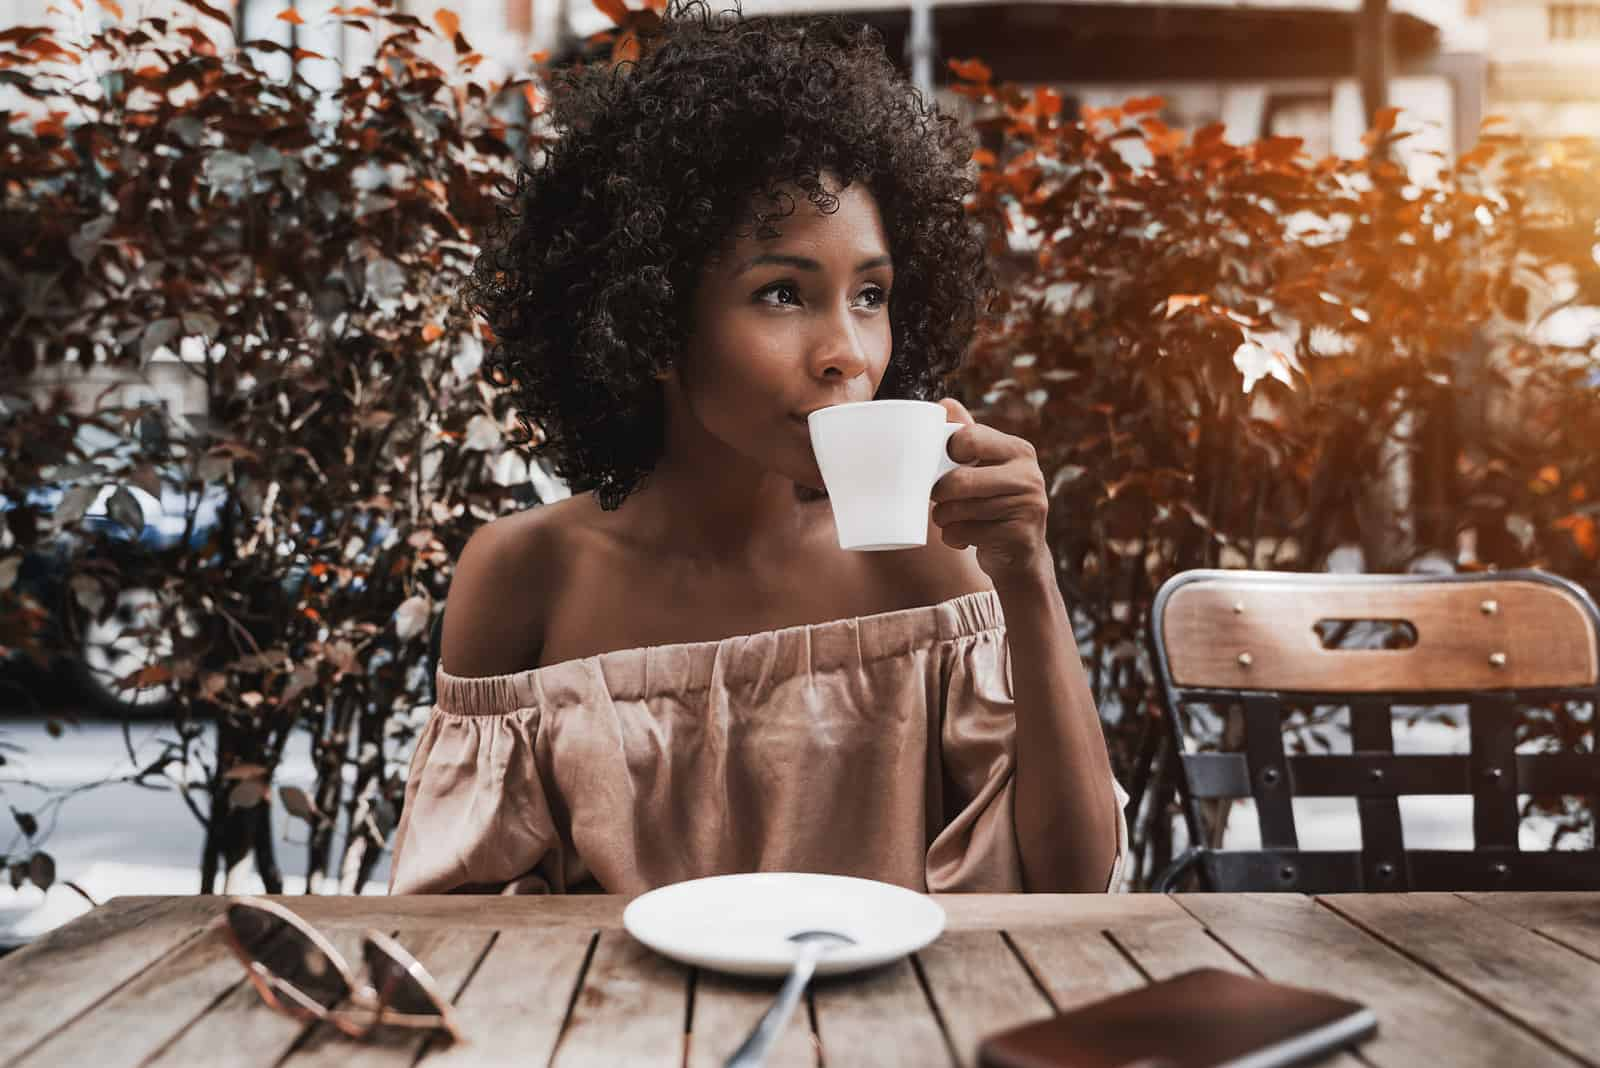 a woman with frizzy hair sits at a table drinking coffee and looks away